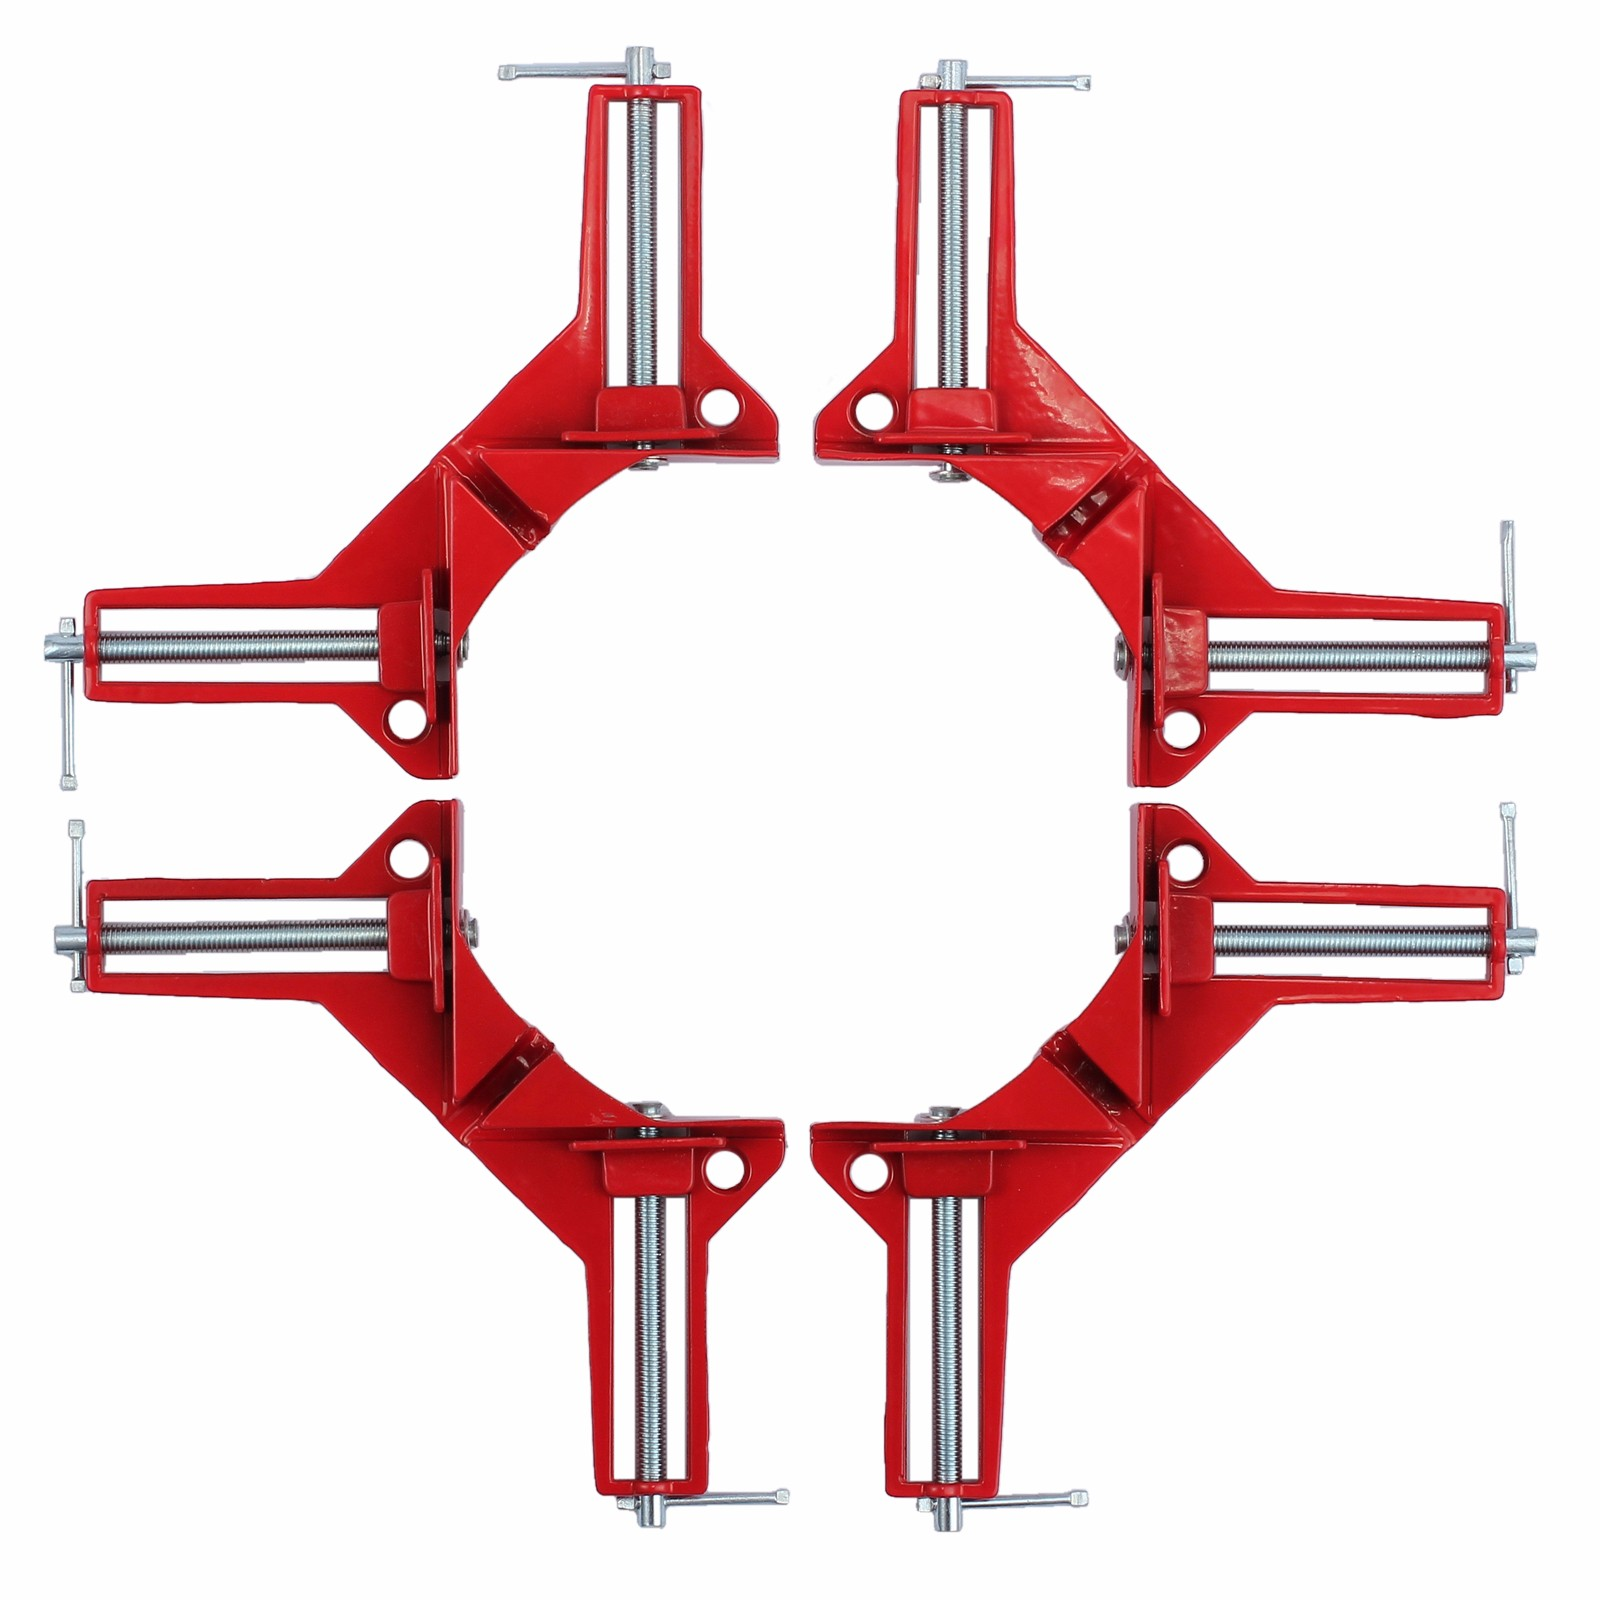 "ESYNIC 4pcs 90 Degree Angle Corner Clamp Holder 90 Degree Right Angle 3"" Corner Clamp Carbide Vice Clamps Picture Frame Corner Clamp Woodworking Metal Welding Frame Gussets Jig Tool"